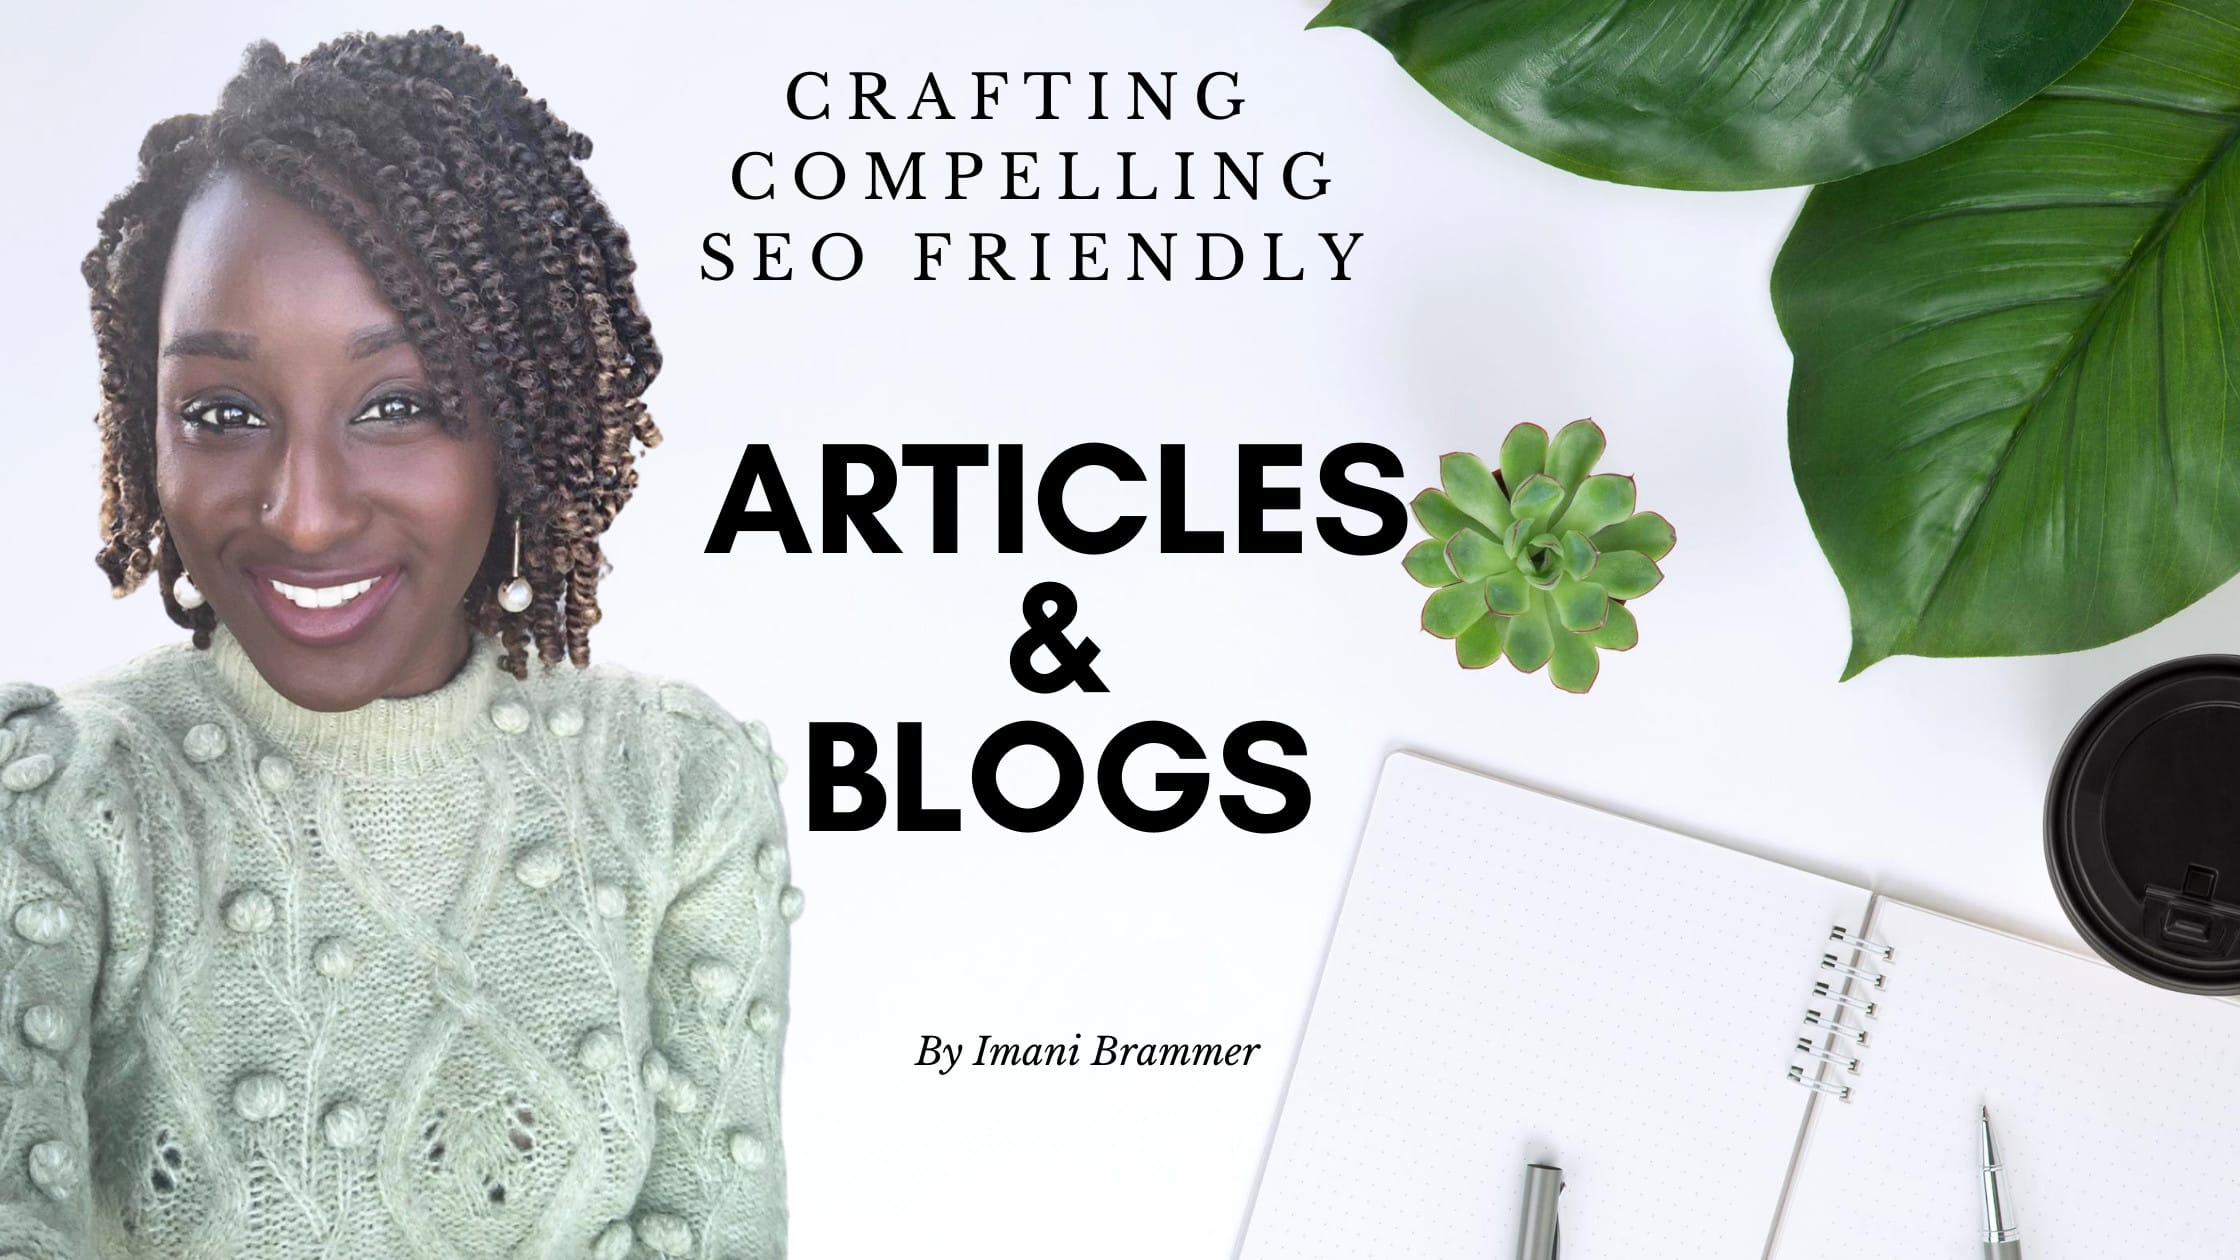 I will write a 500 word blog or article